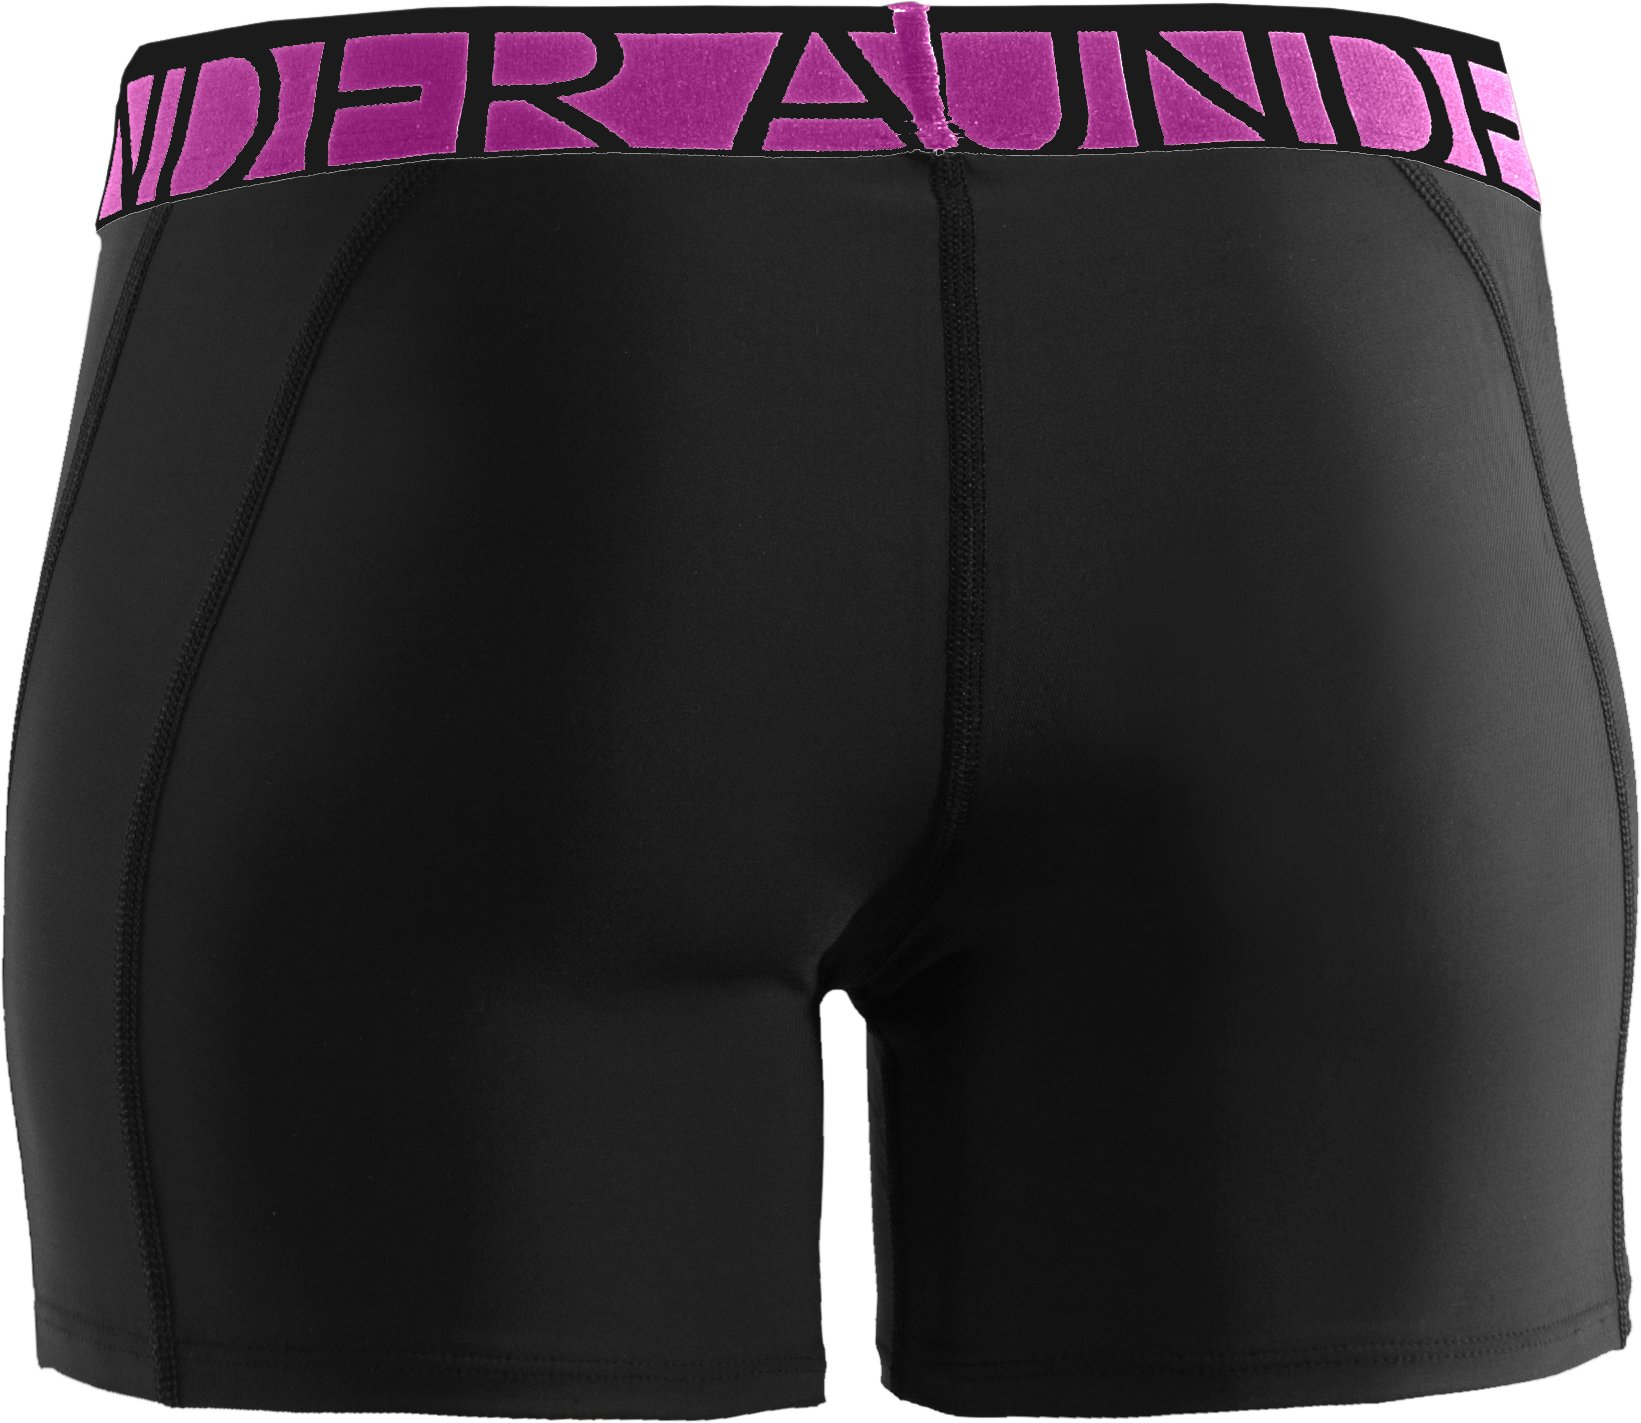 "Women's UA Still Gotta Have It 4"" Compression Shorts, Black"